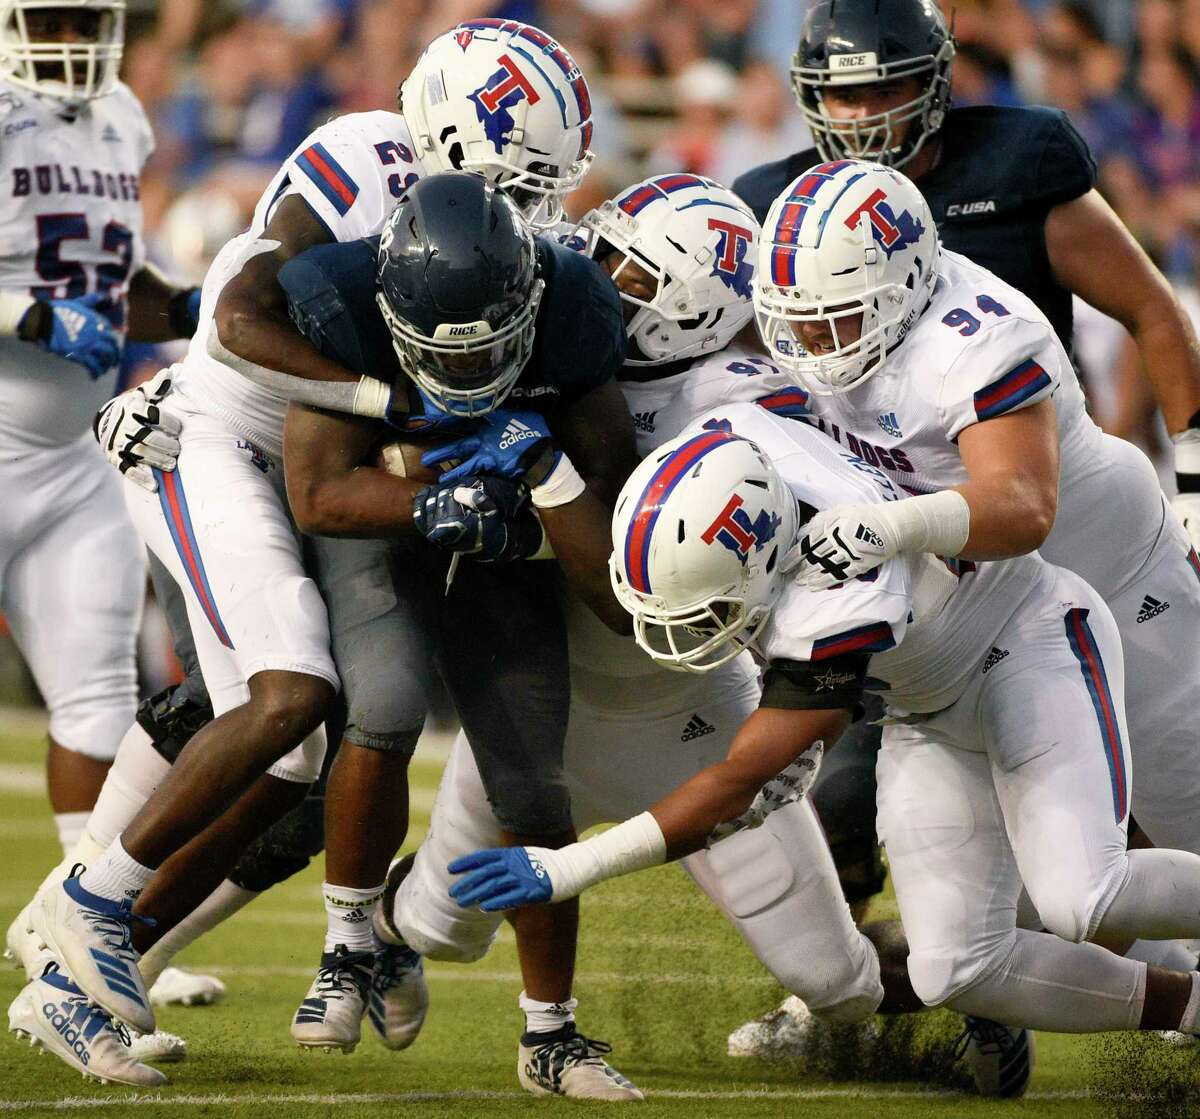 Rice running back Aston Walter, bottom left, is tackled by Louisiana Tech safety Bee Jay Williamson, left, and teammates during the first half of an NCAA college football game, Saturday, Sept. 28, 2019, in Houston.